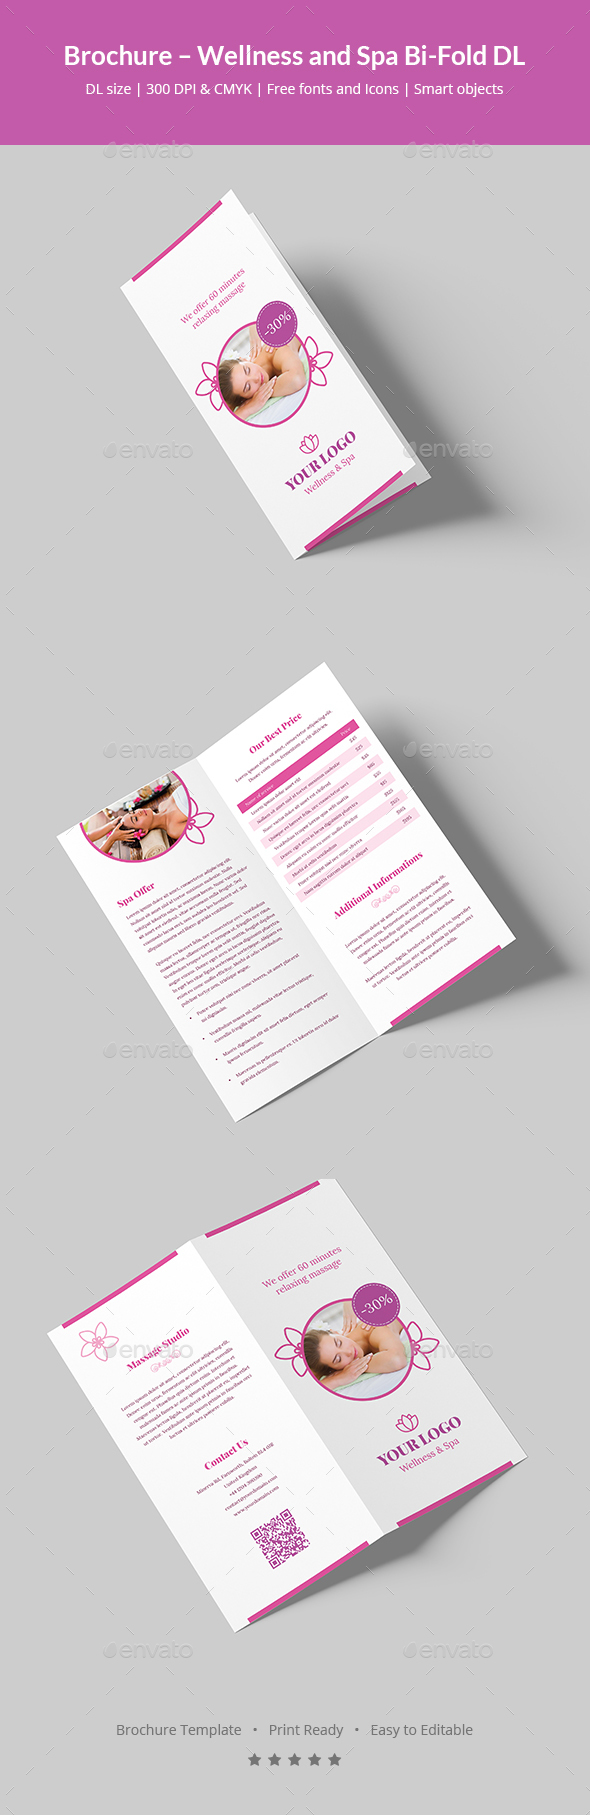 GraphicRiver Brochure Wellness and Spa Bi-Fold DL 20827298